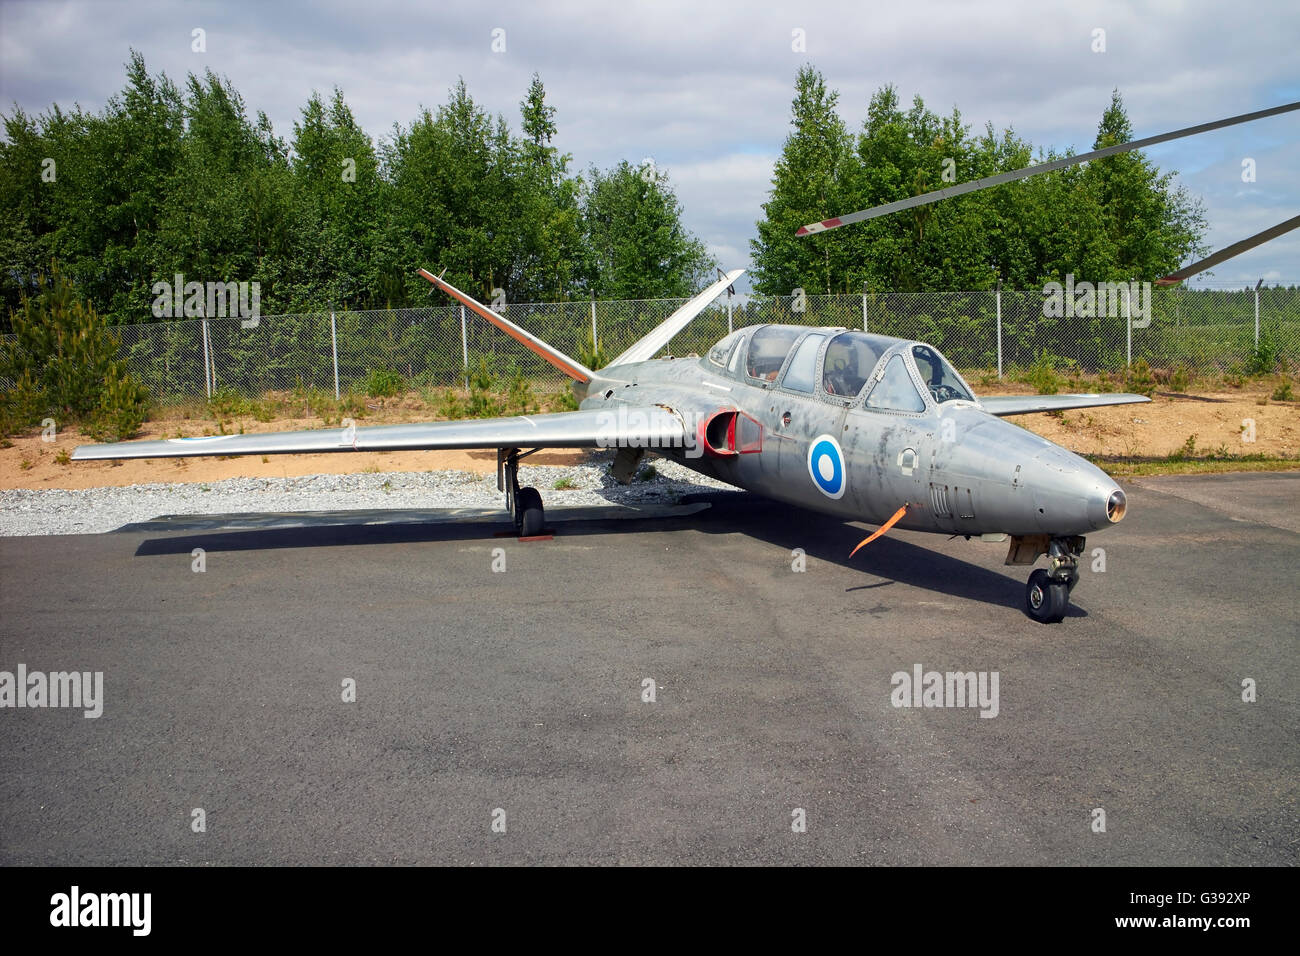 Fouga CM-170 Magister on display, Finland - Stock Image